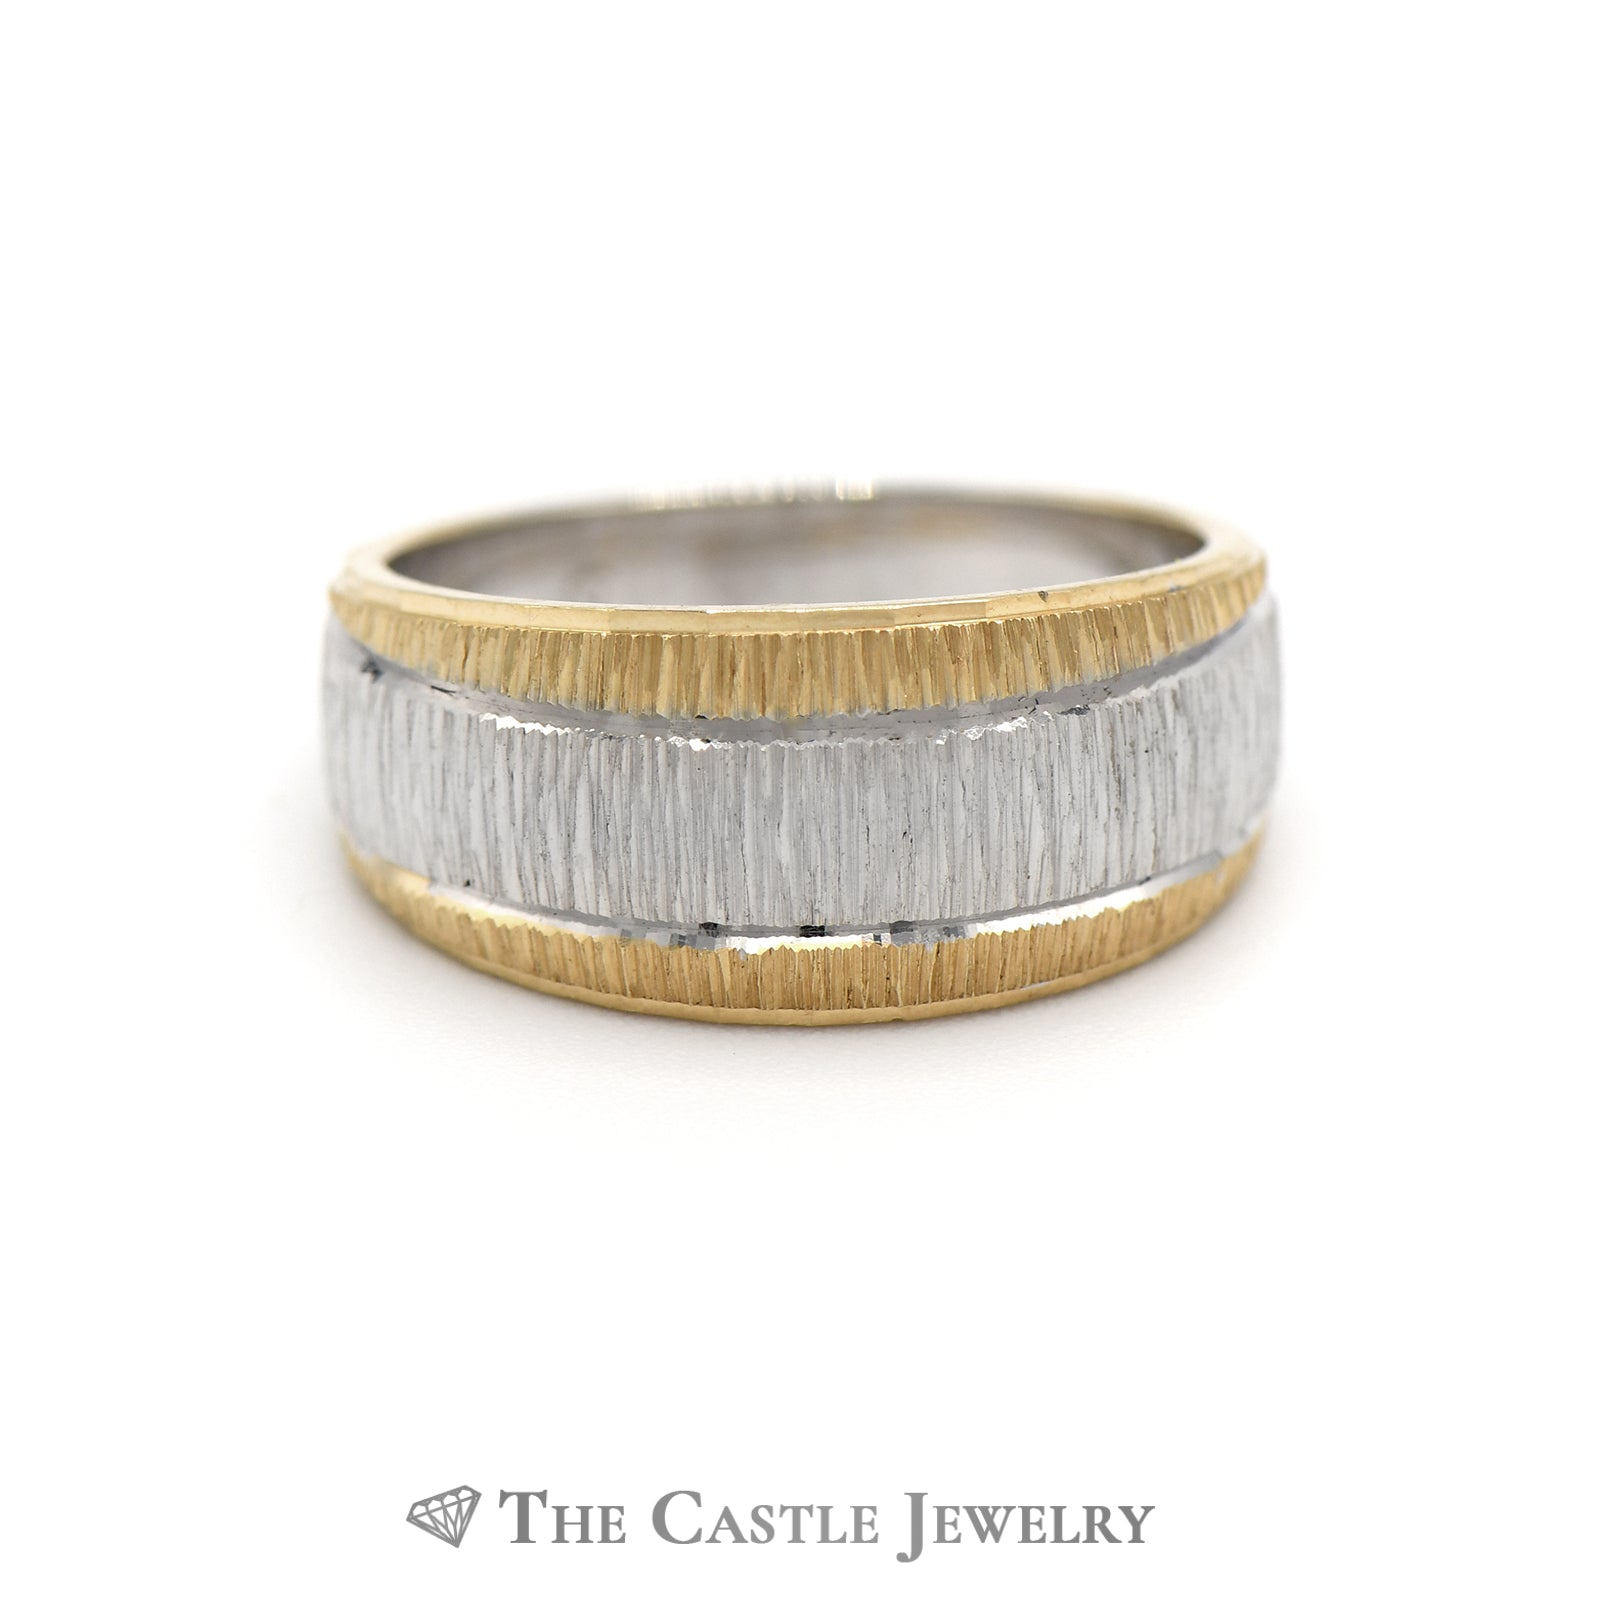 Lovely Two Toned Tapered Band in White and Yellow Gold